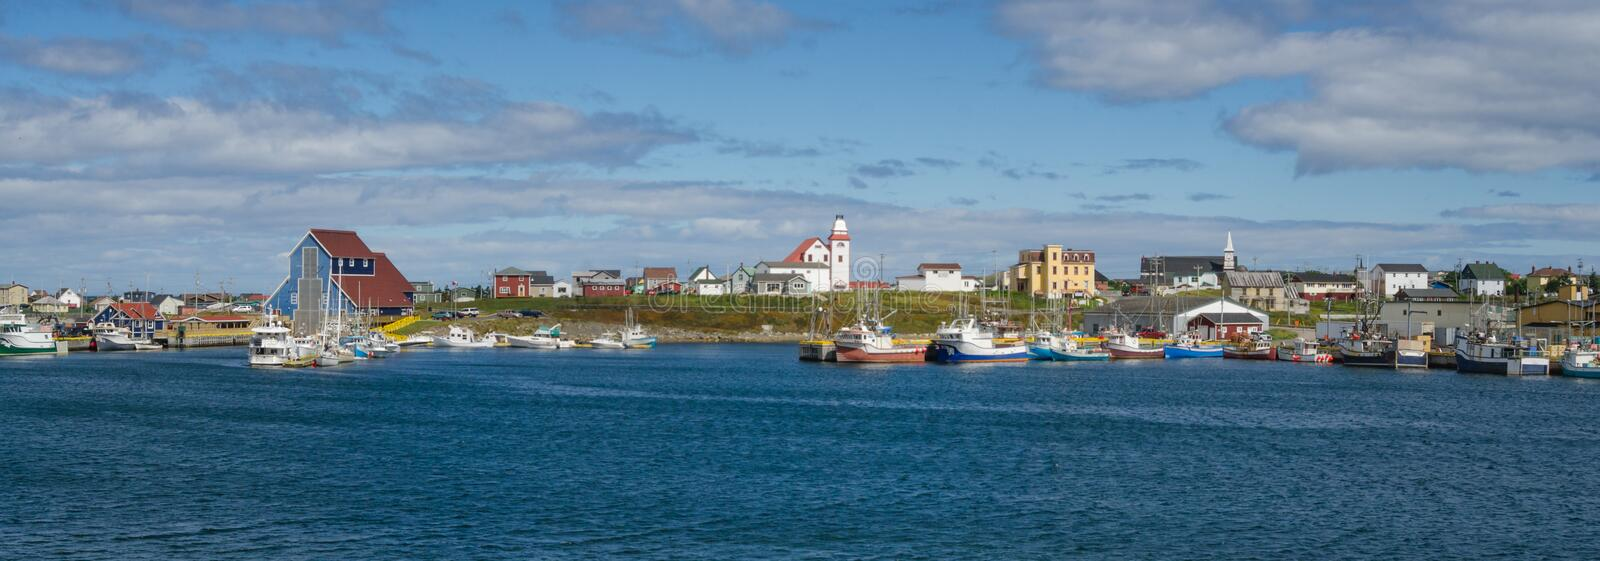 Postcards from Bonavista, Newfoundland fishing villages see boats at rest for the day on calm coastal water. Bonavista, Newfoundland fishing village. Boats tied royalty free stock photography